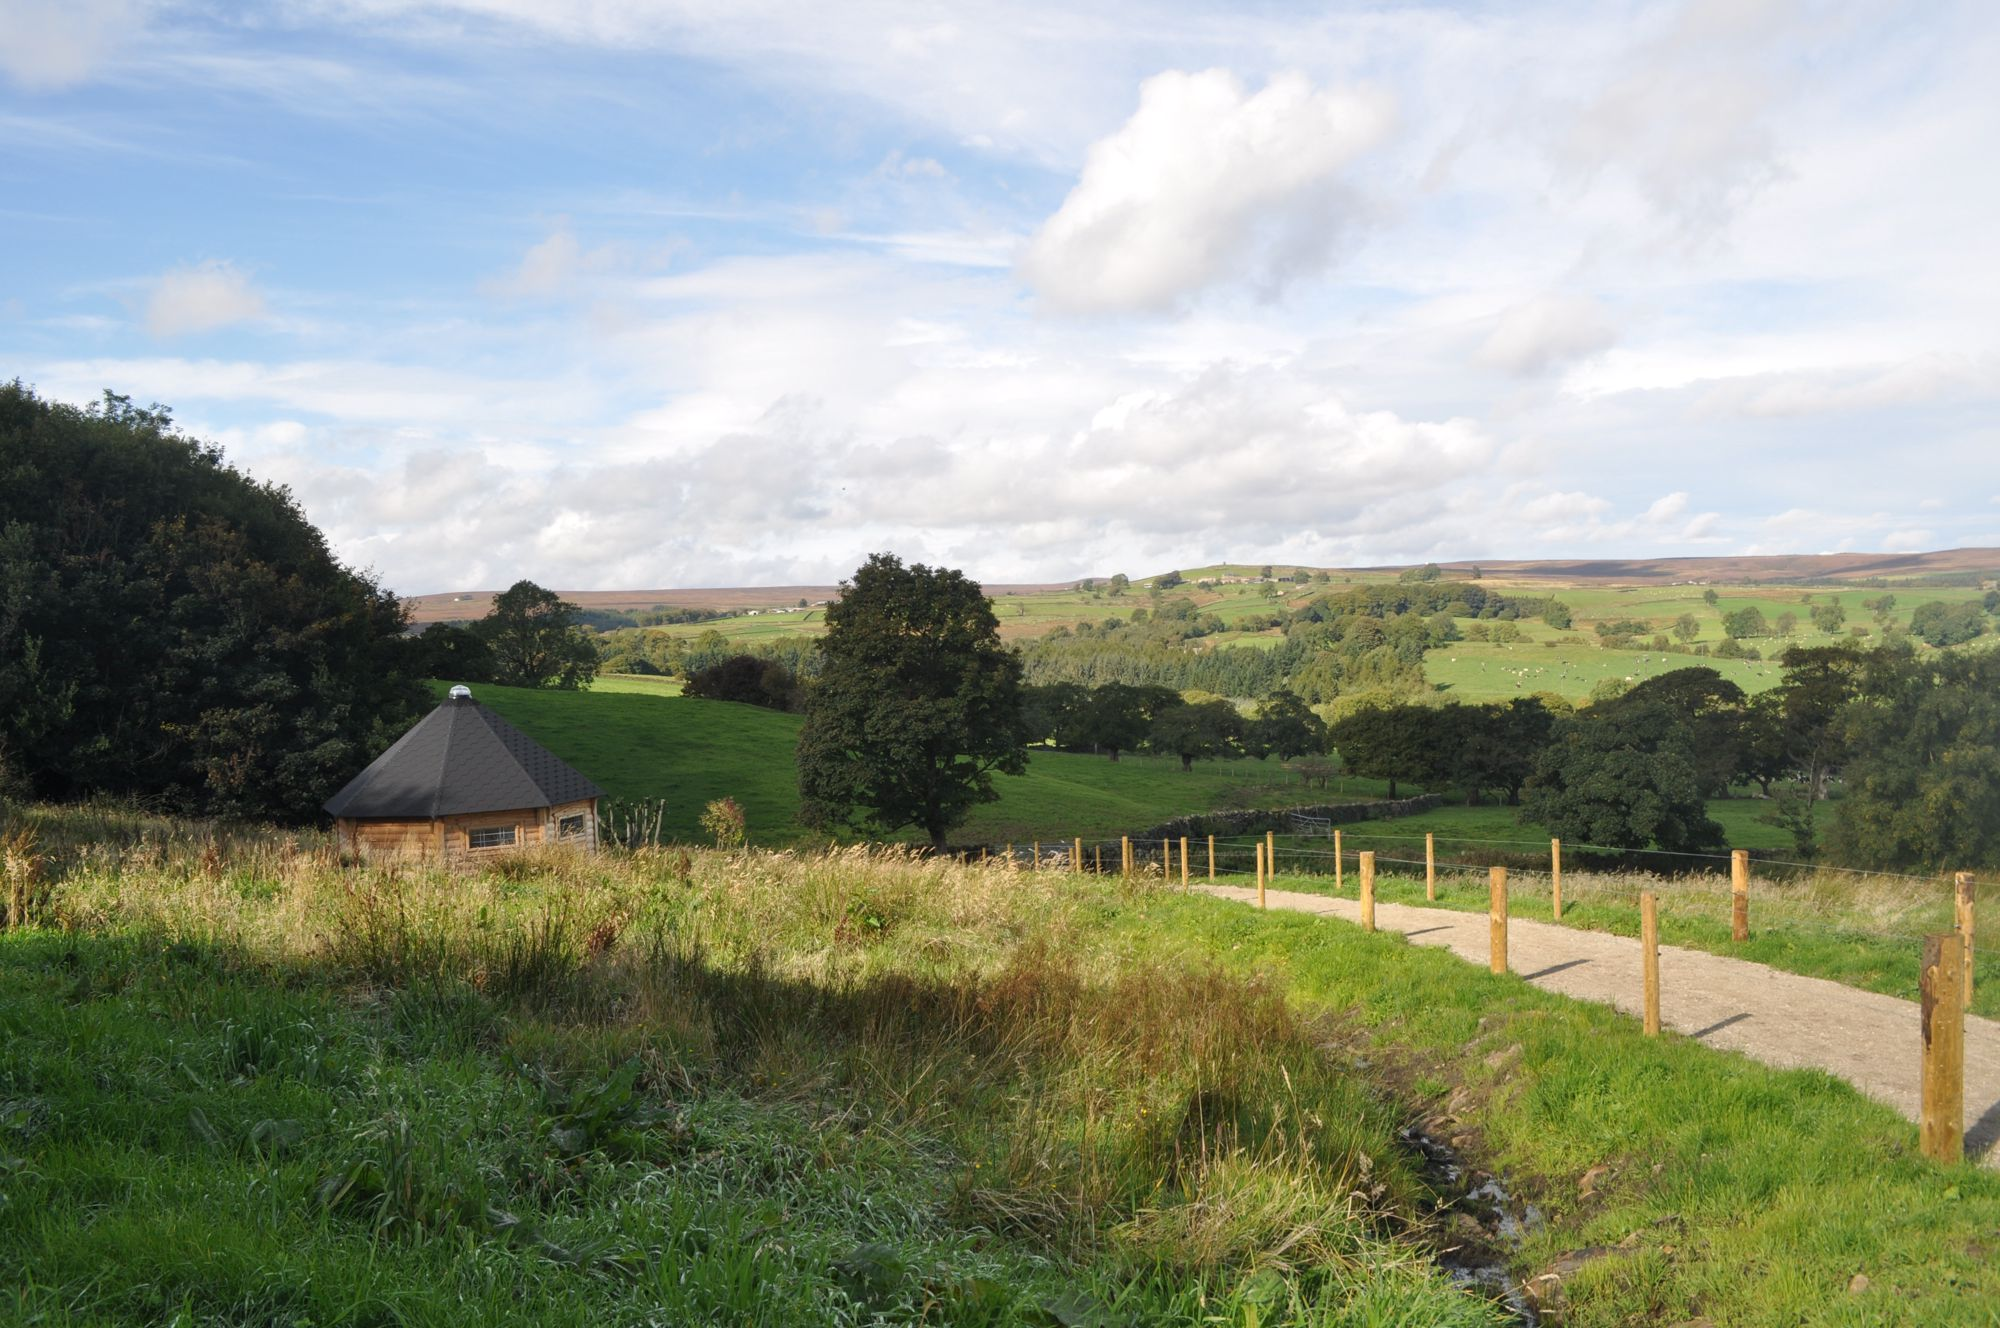 Little Seed Field Glamping in North East